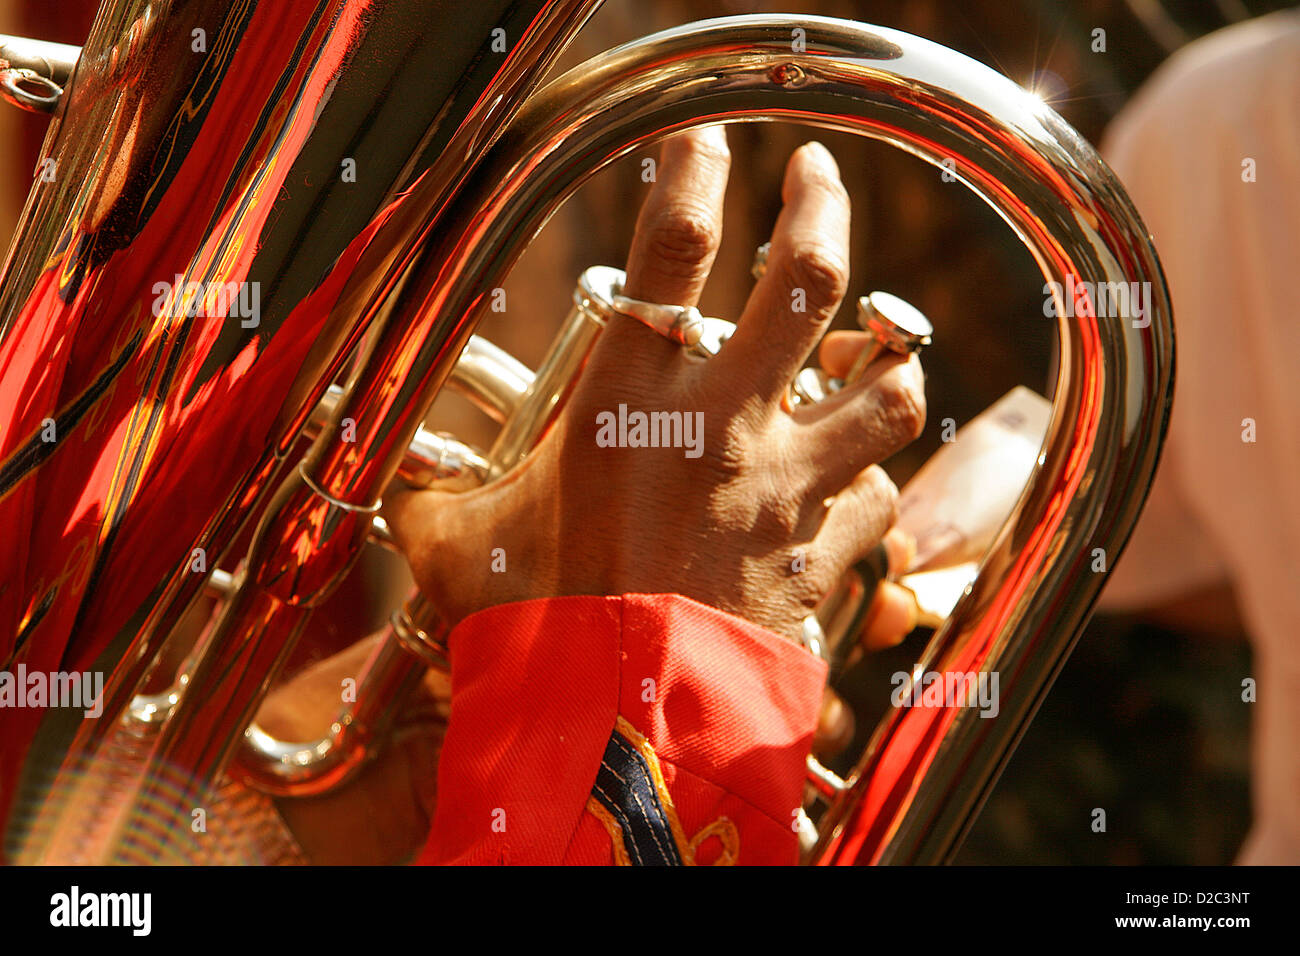 Trumpet Called 'Baja' Played During Indian Marriage Processions, India - Stock Image